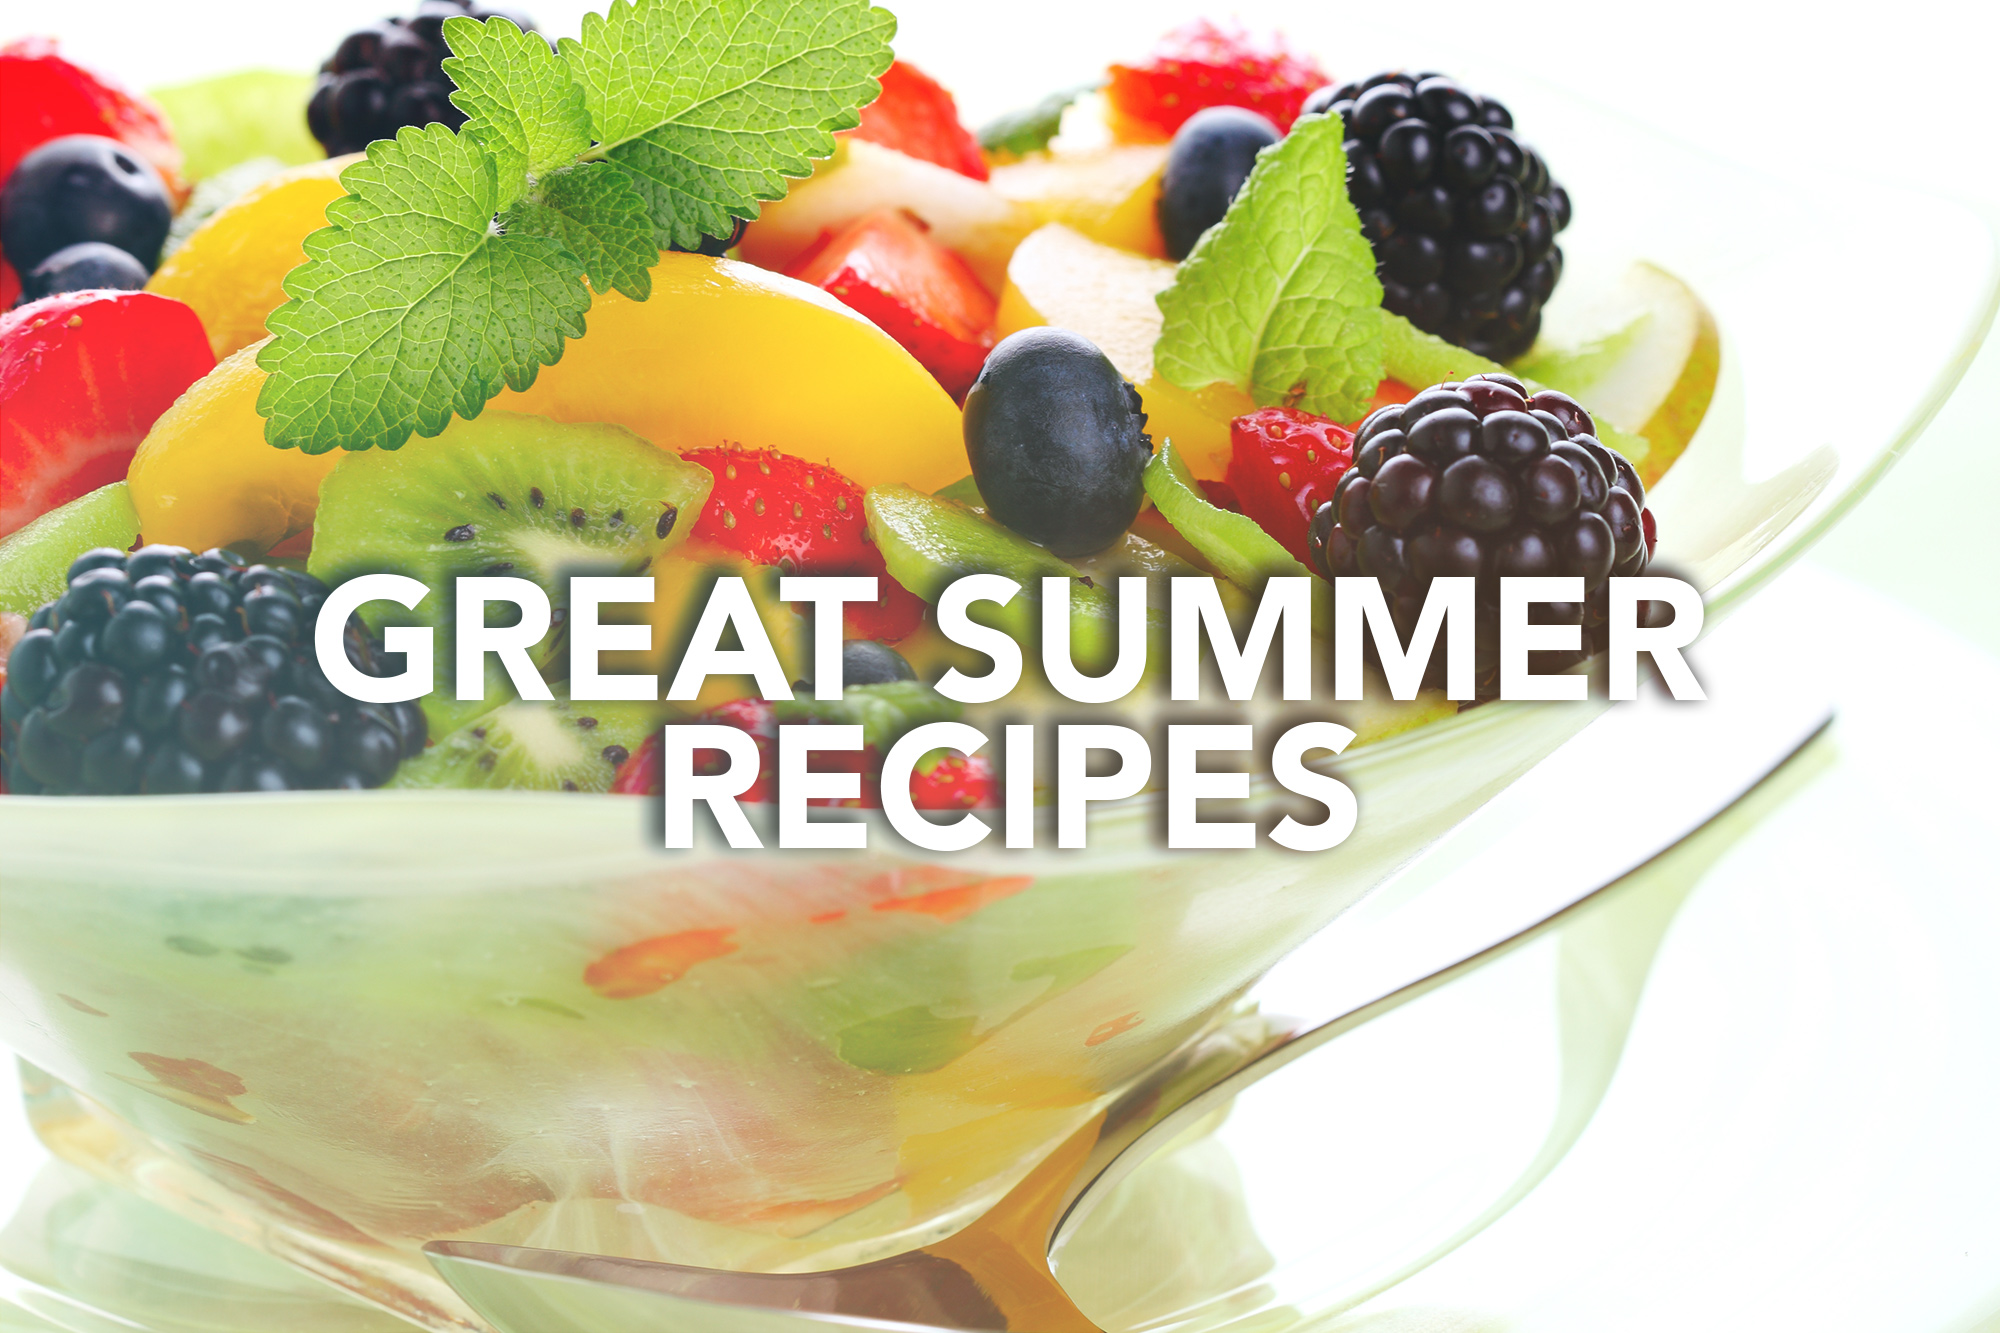 Great Summer Recipes